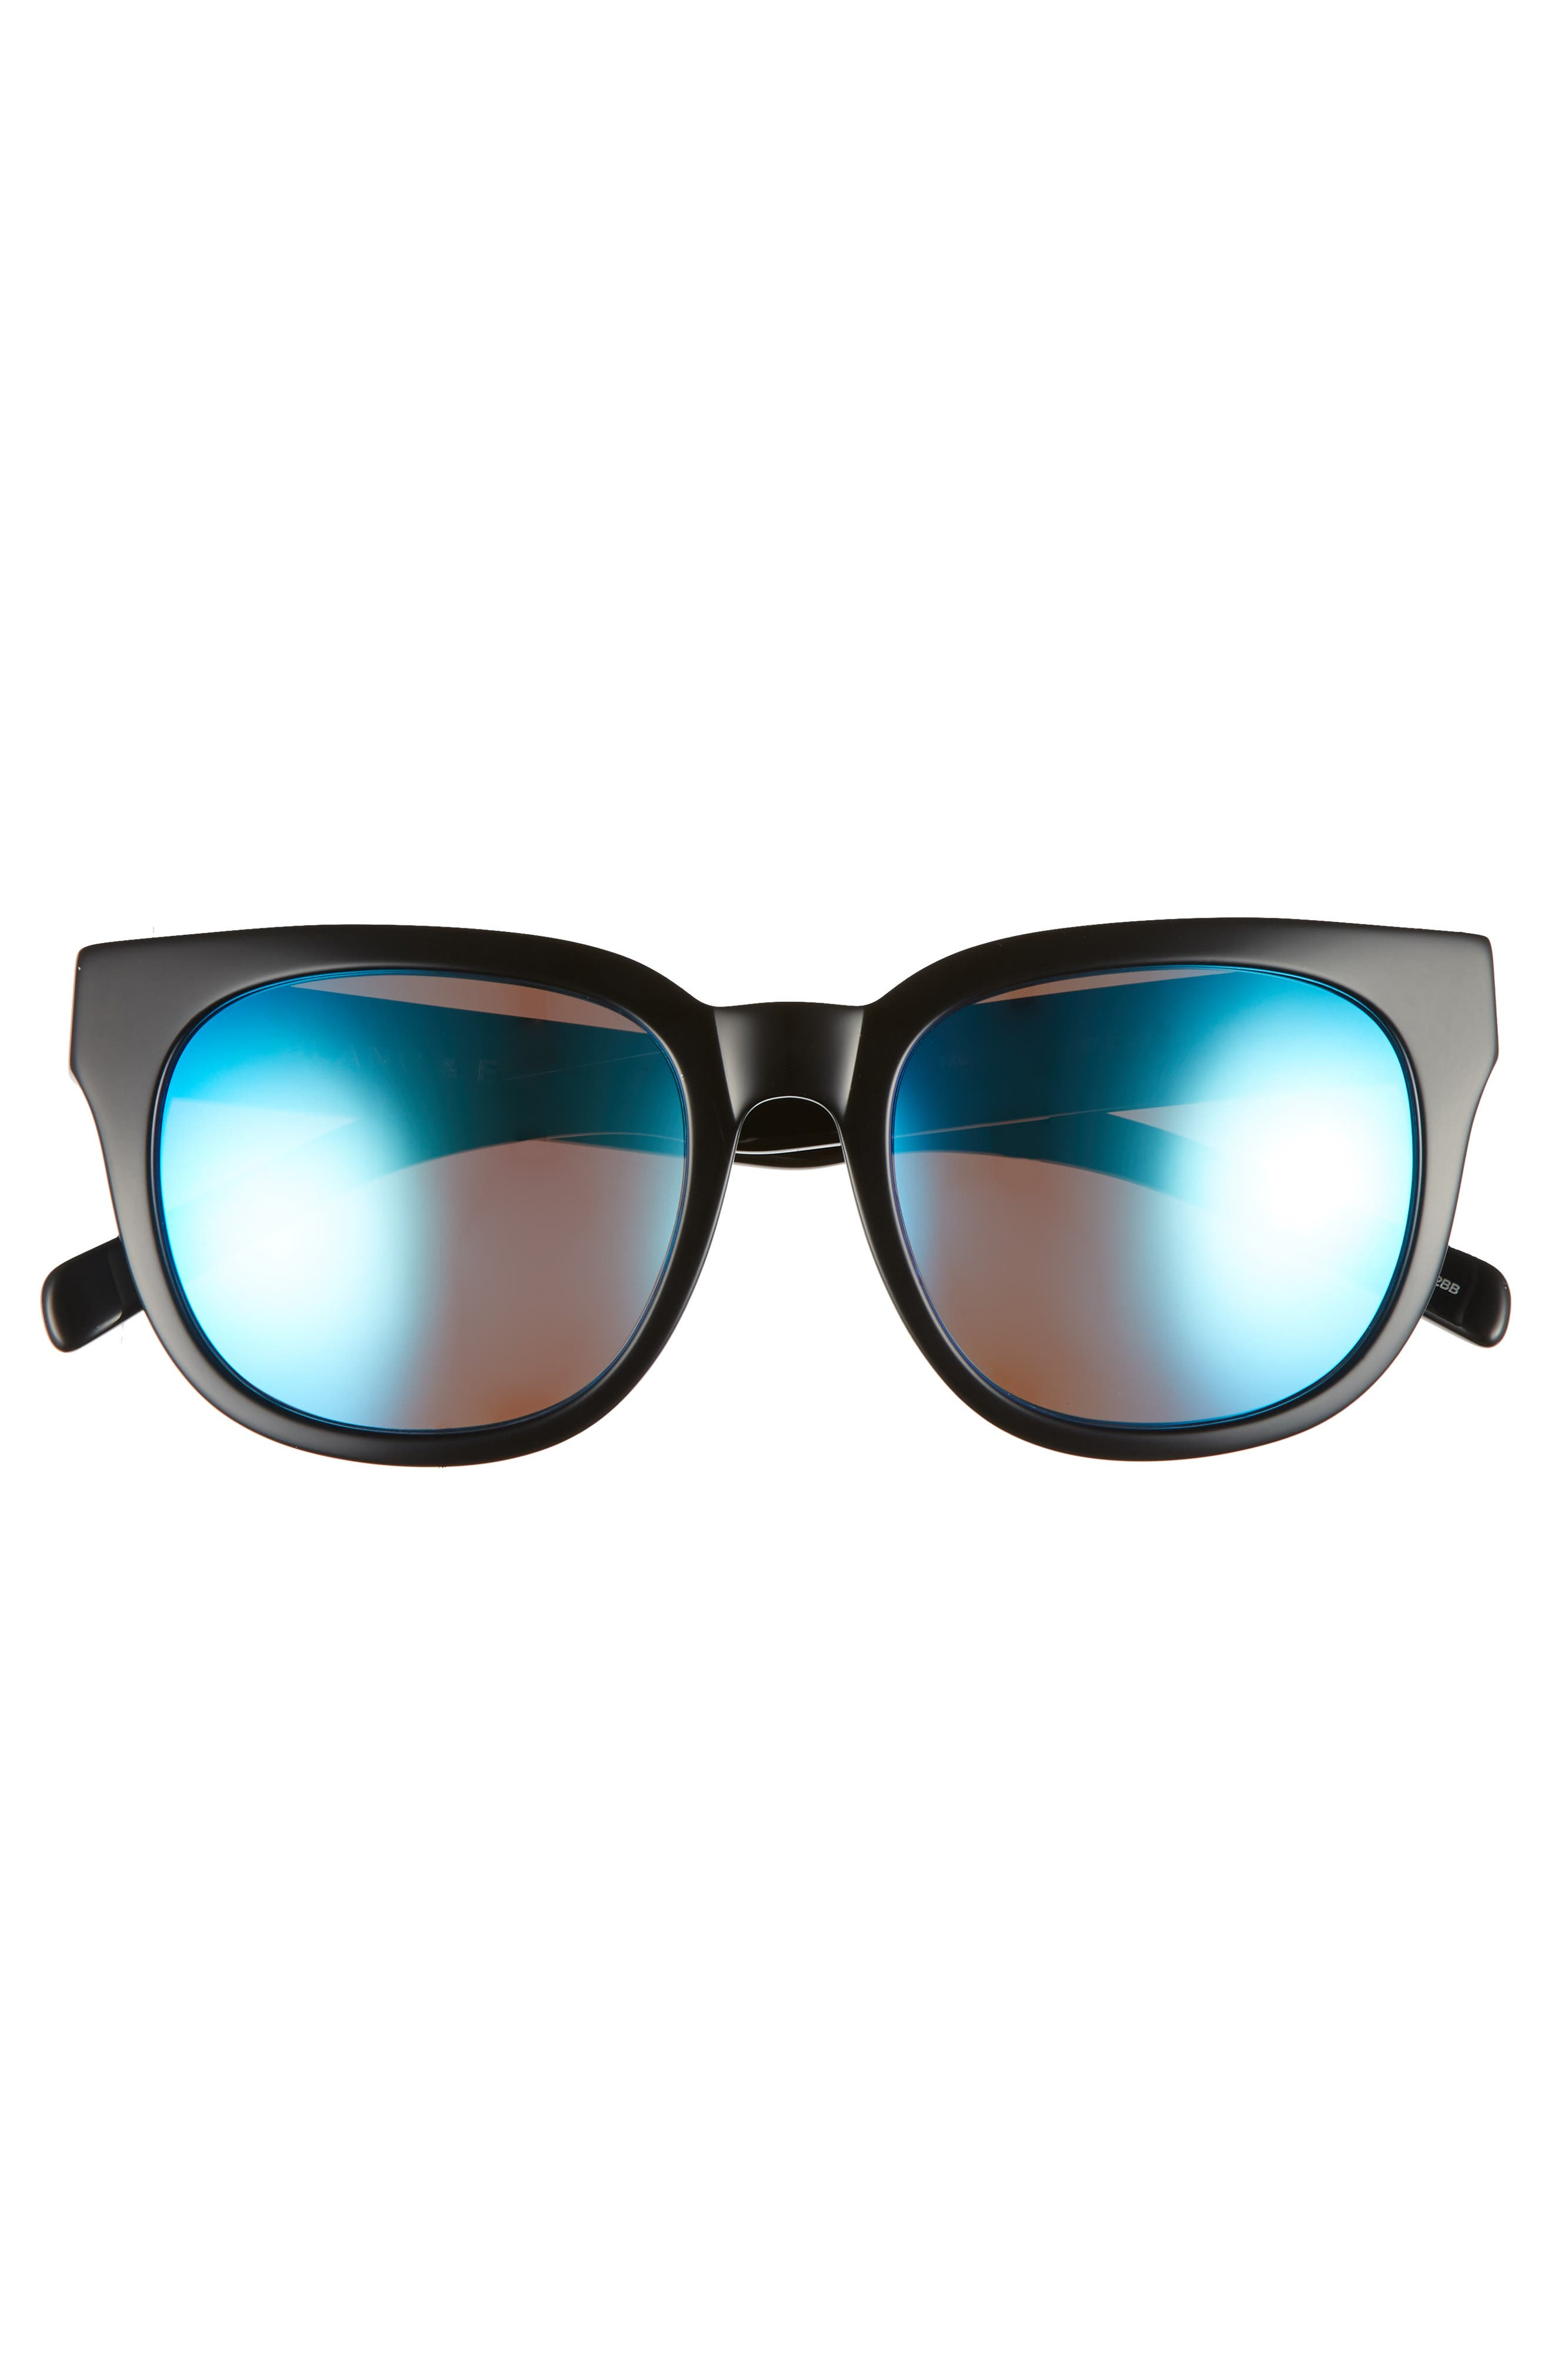 BLANC & ECLARE Seoul 55mm Polarized Sunglasses,                             Alternate thumbnail 3, color,                             Black/ Blue Mirror